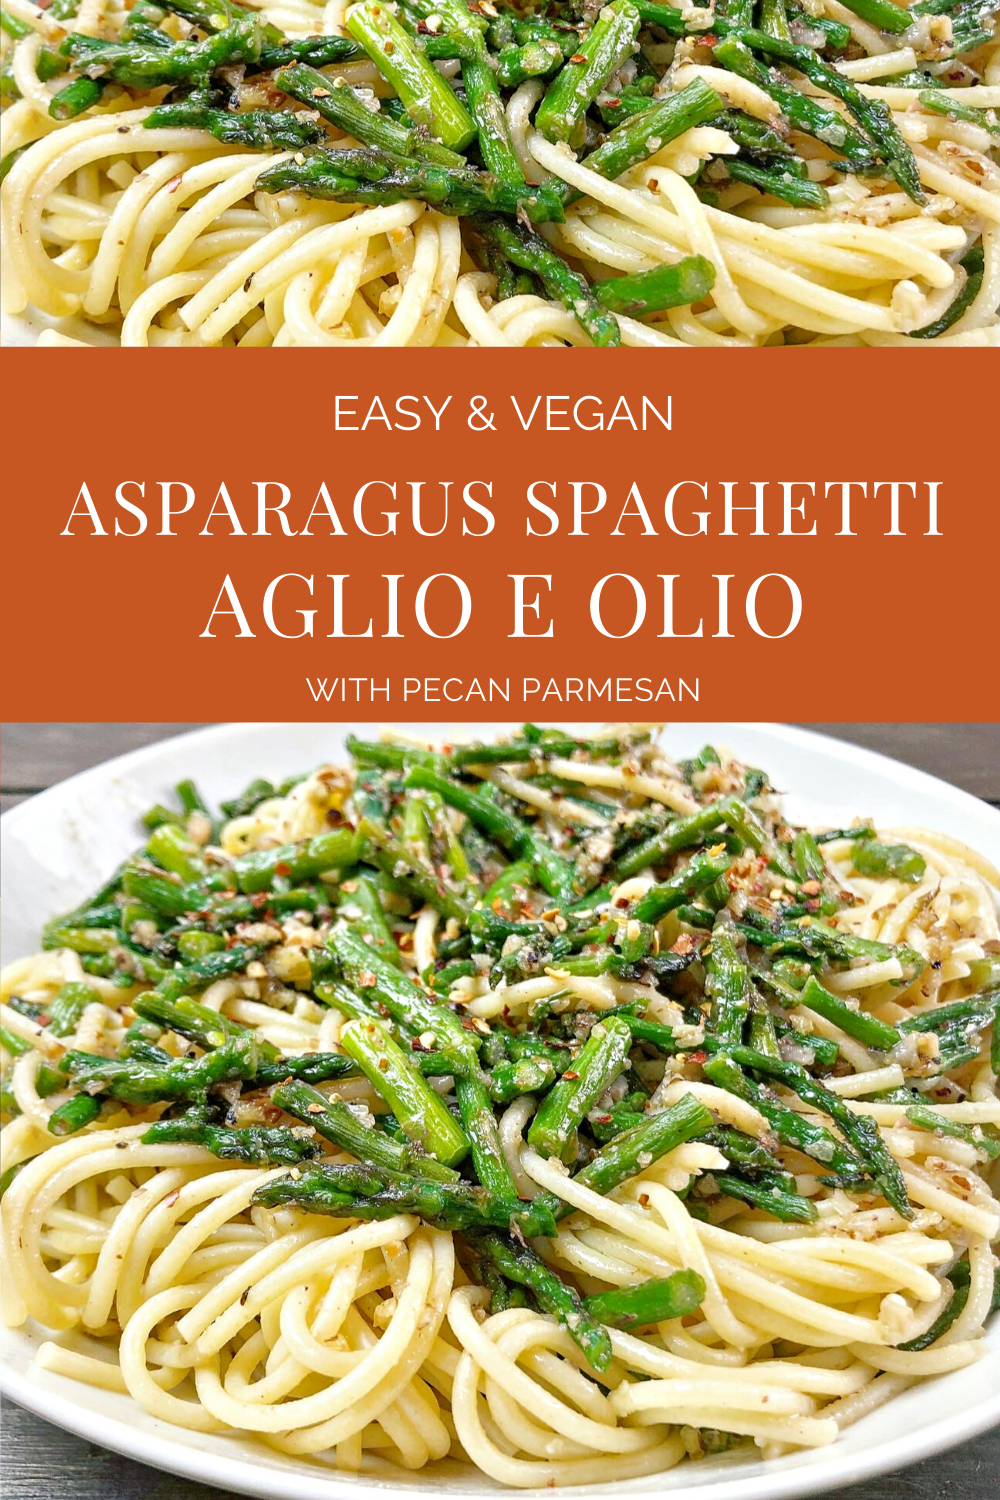 Spaghetti Aglio e Olio with Asparagus & Homemade Pecan Parmesan - The beauty of this dish is in its simplicity! No fussy ingredients here; just fresh asparagus along with a handful of pantry staples is all you need! thiswifecooks.com #easyveganpasta #easyspaghettidinner #healthypastarecipe #spaghettiwithasparagus #thiswifecooksrecipes #spaghettiolio #quickandeasyvegandinner #veganquarantine #plantbaseddinner via @thiswifecooks